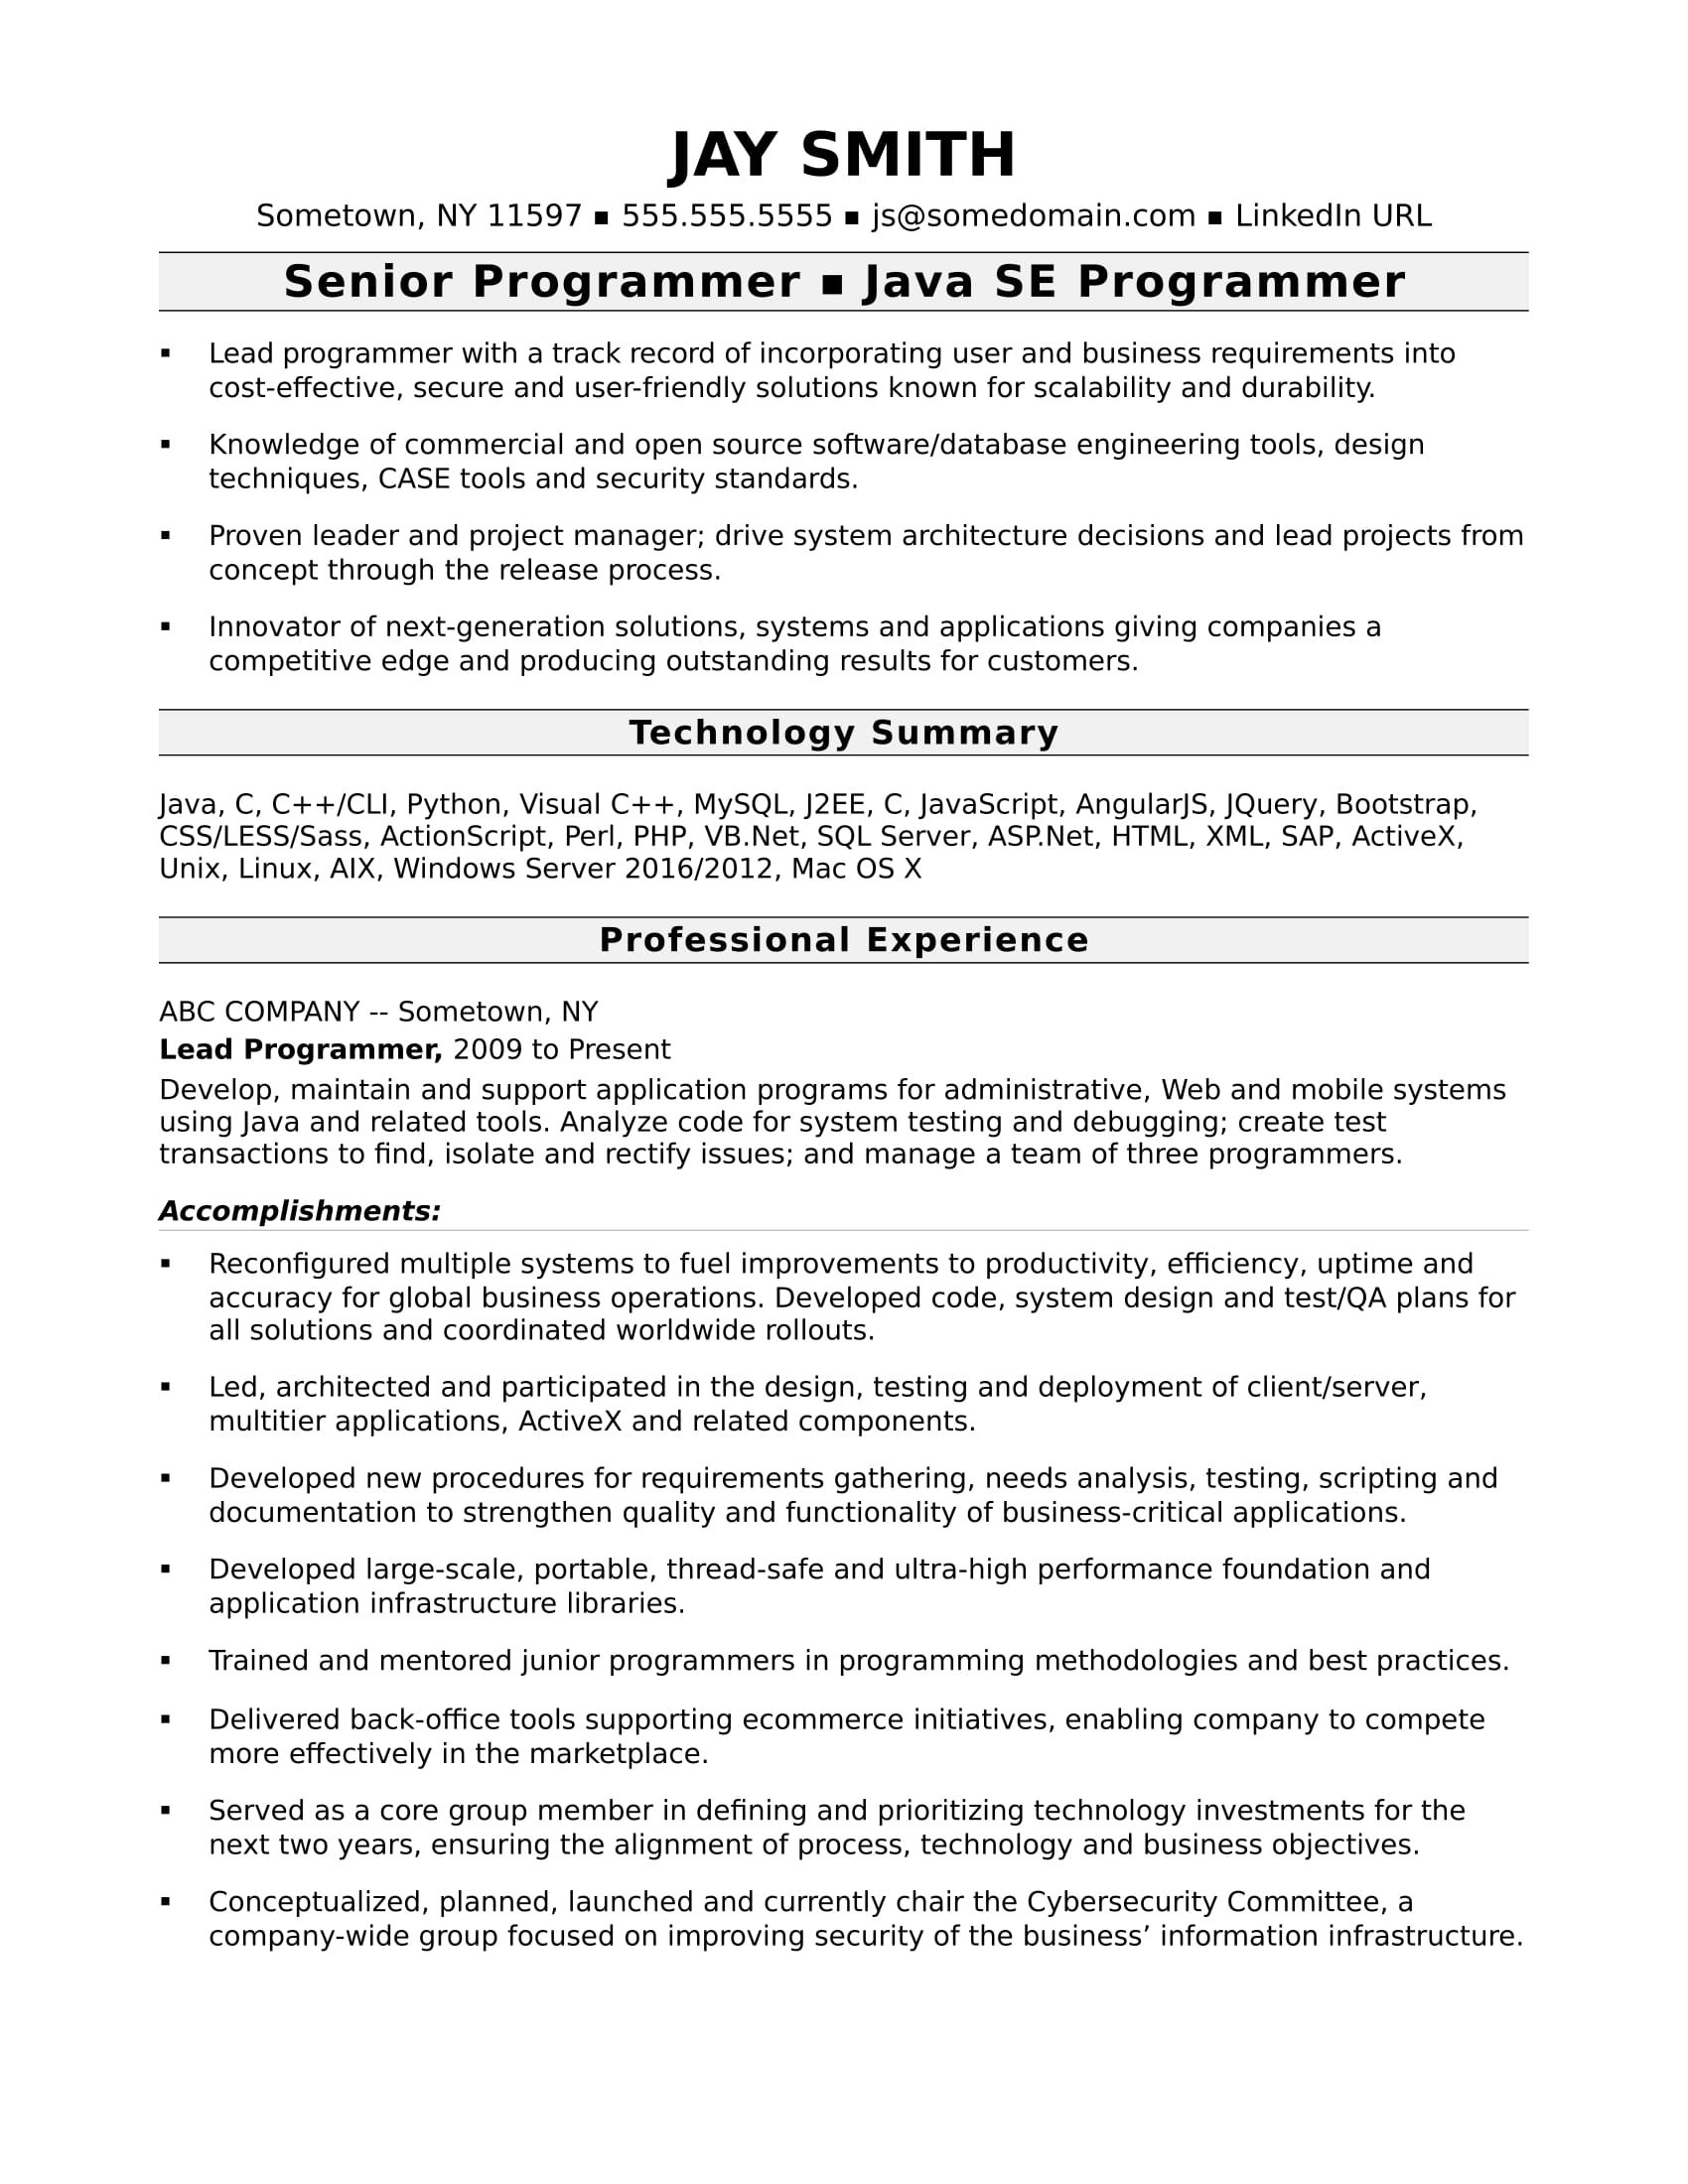 Computer Programming Skills Resume Sample Resume For An Experienced Computer Programmer